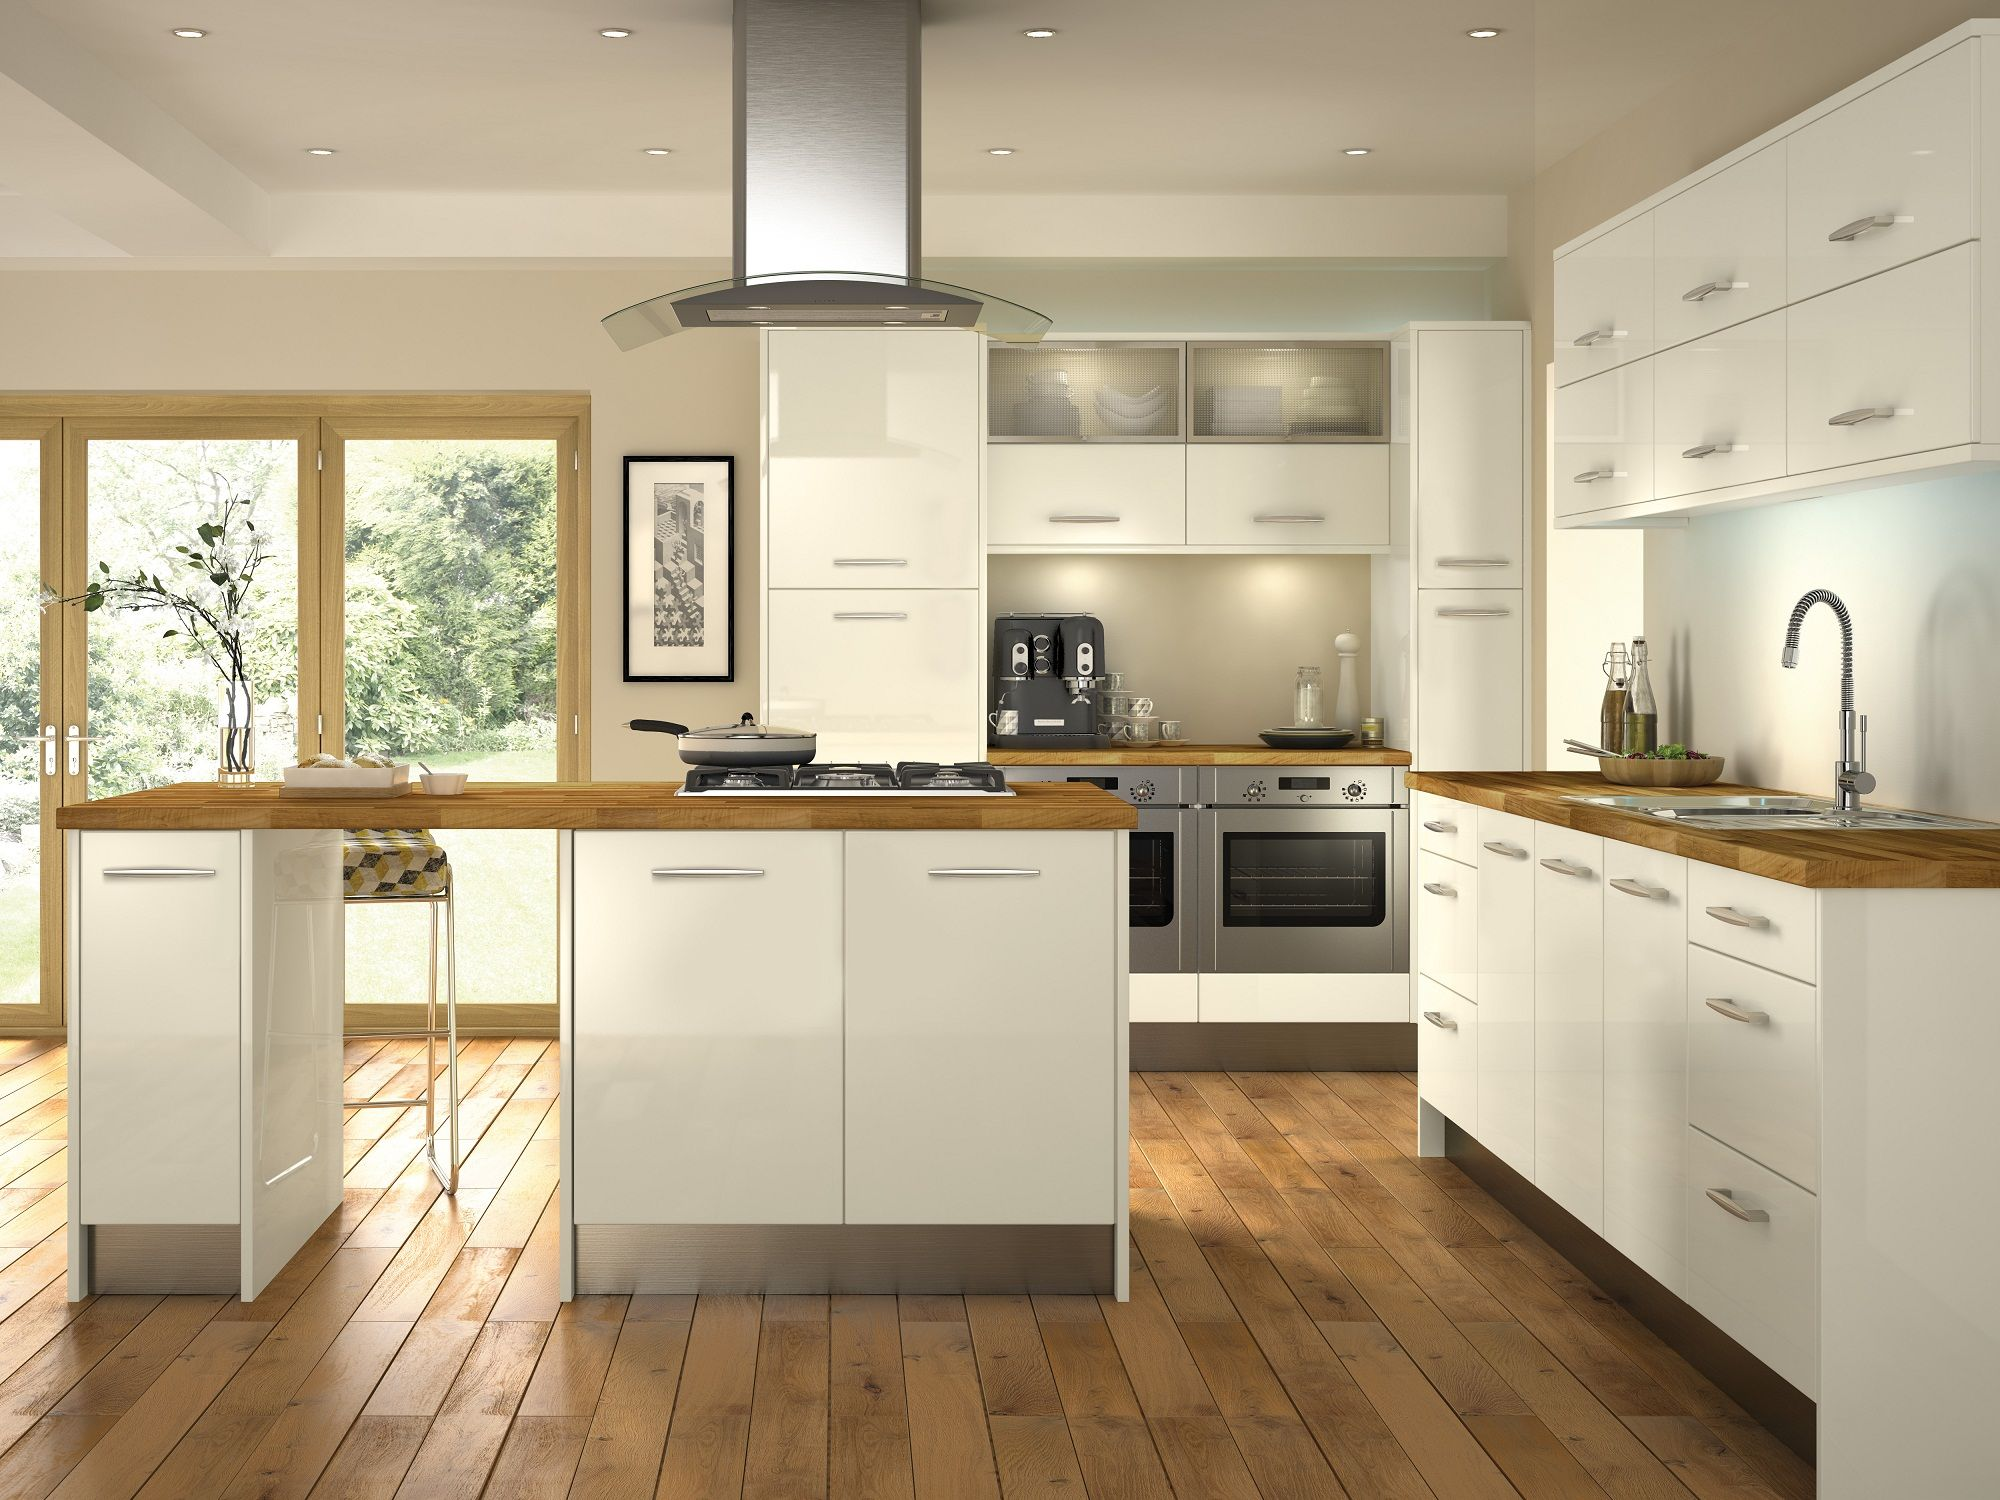 Ivory gloss kitchen bentleys interiors - Minoco Ivory This Gloss Kitchen Door Would Make Any Kitchen Feel Contemporary Http